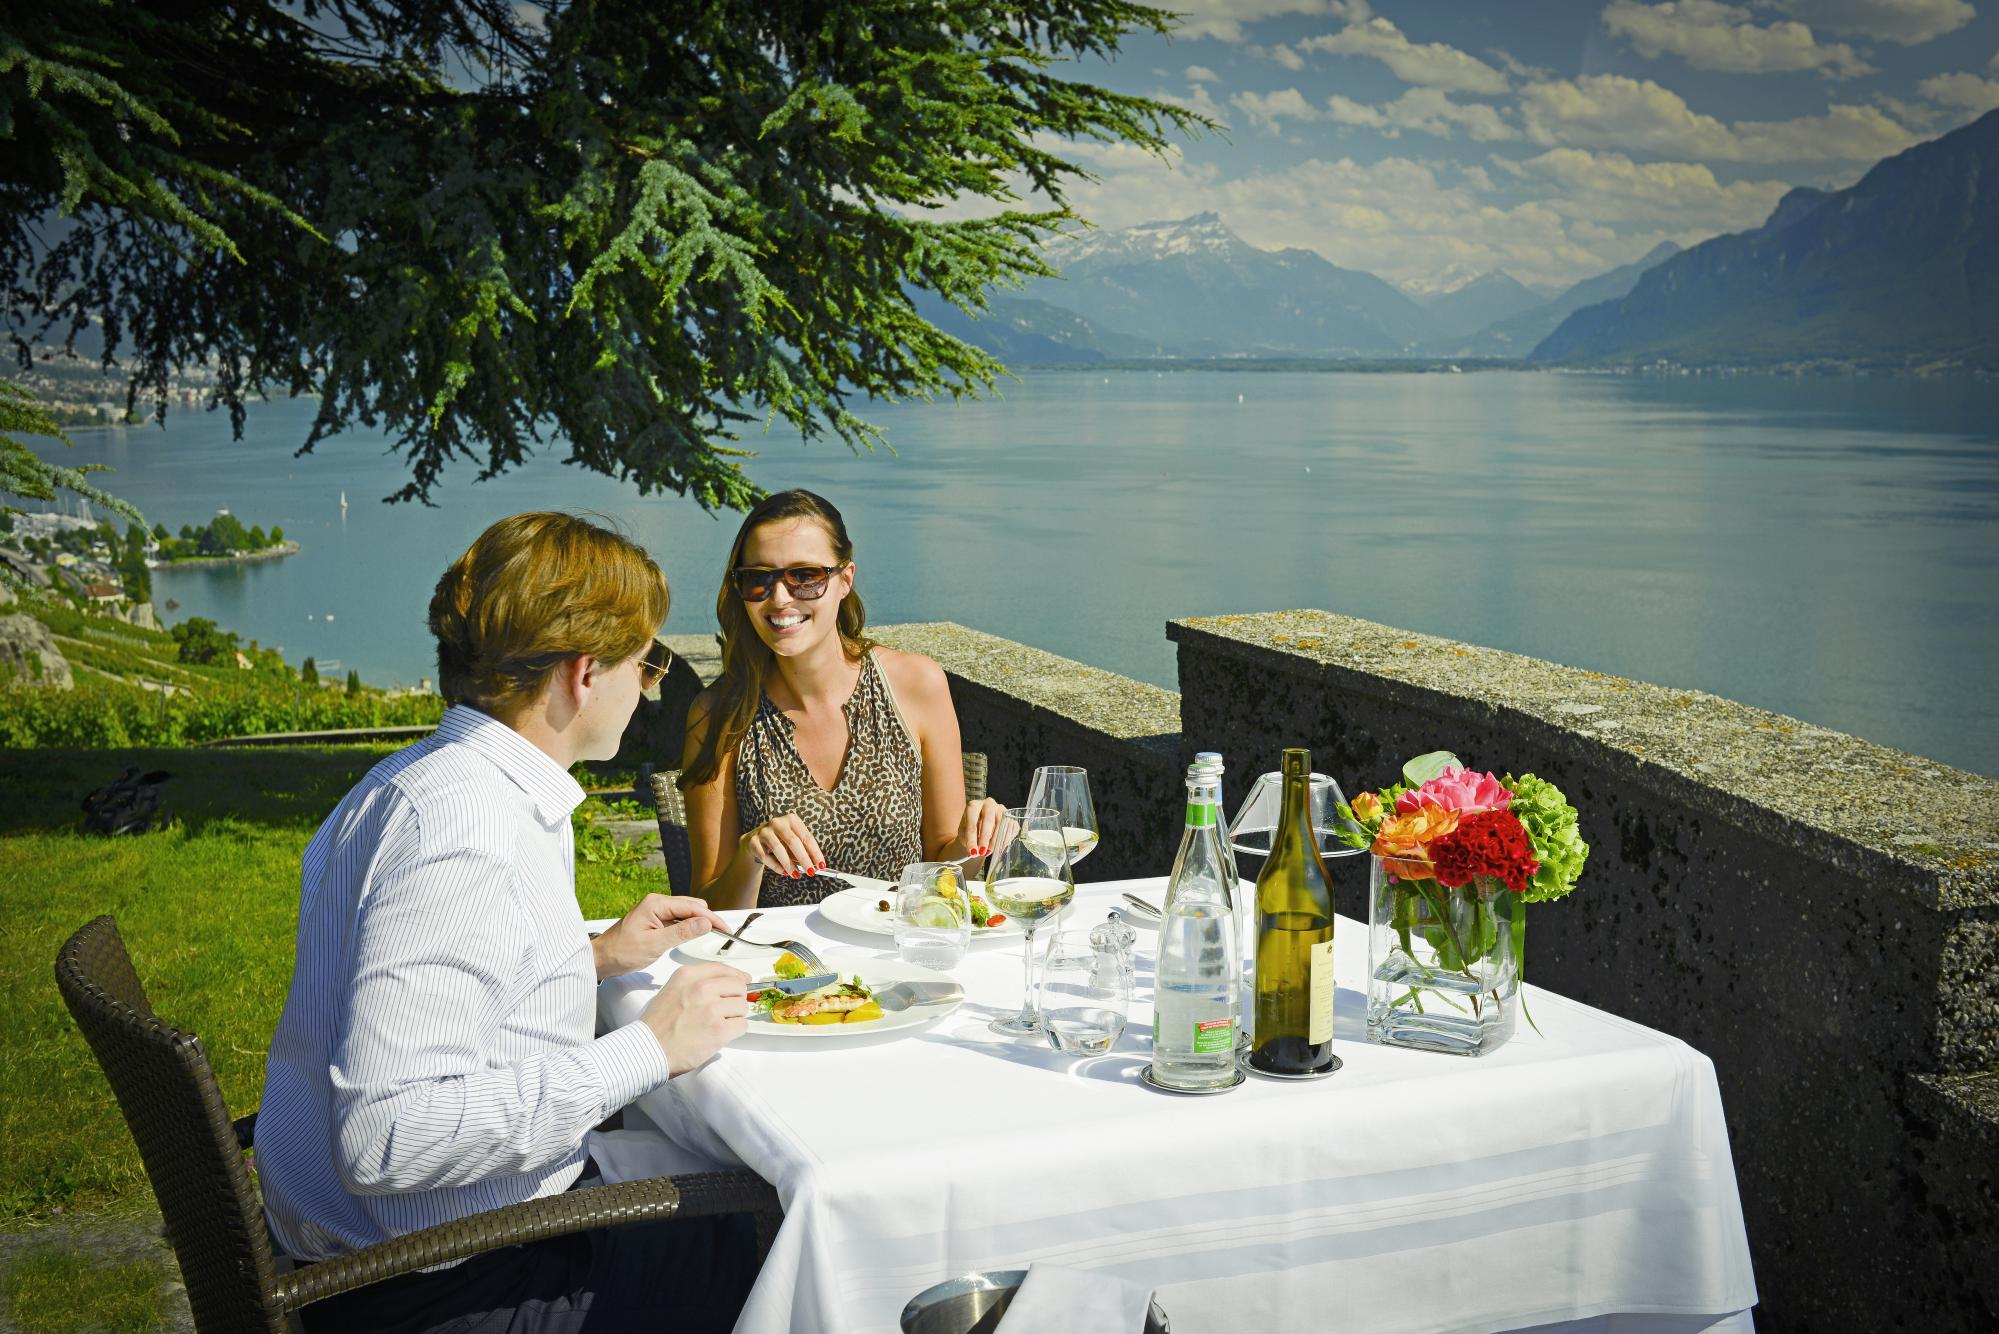 Gastronomy in Lavaux